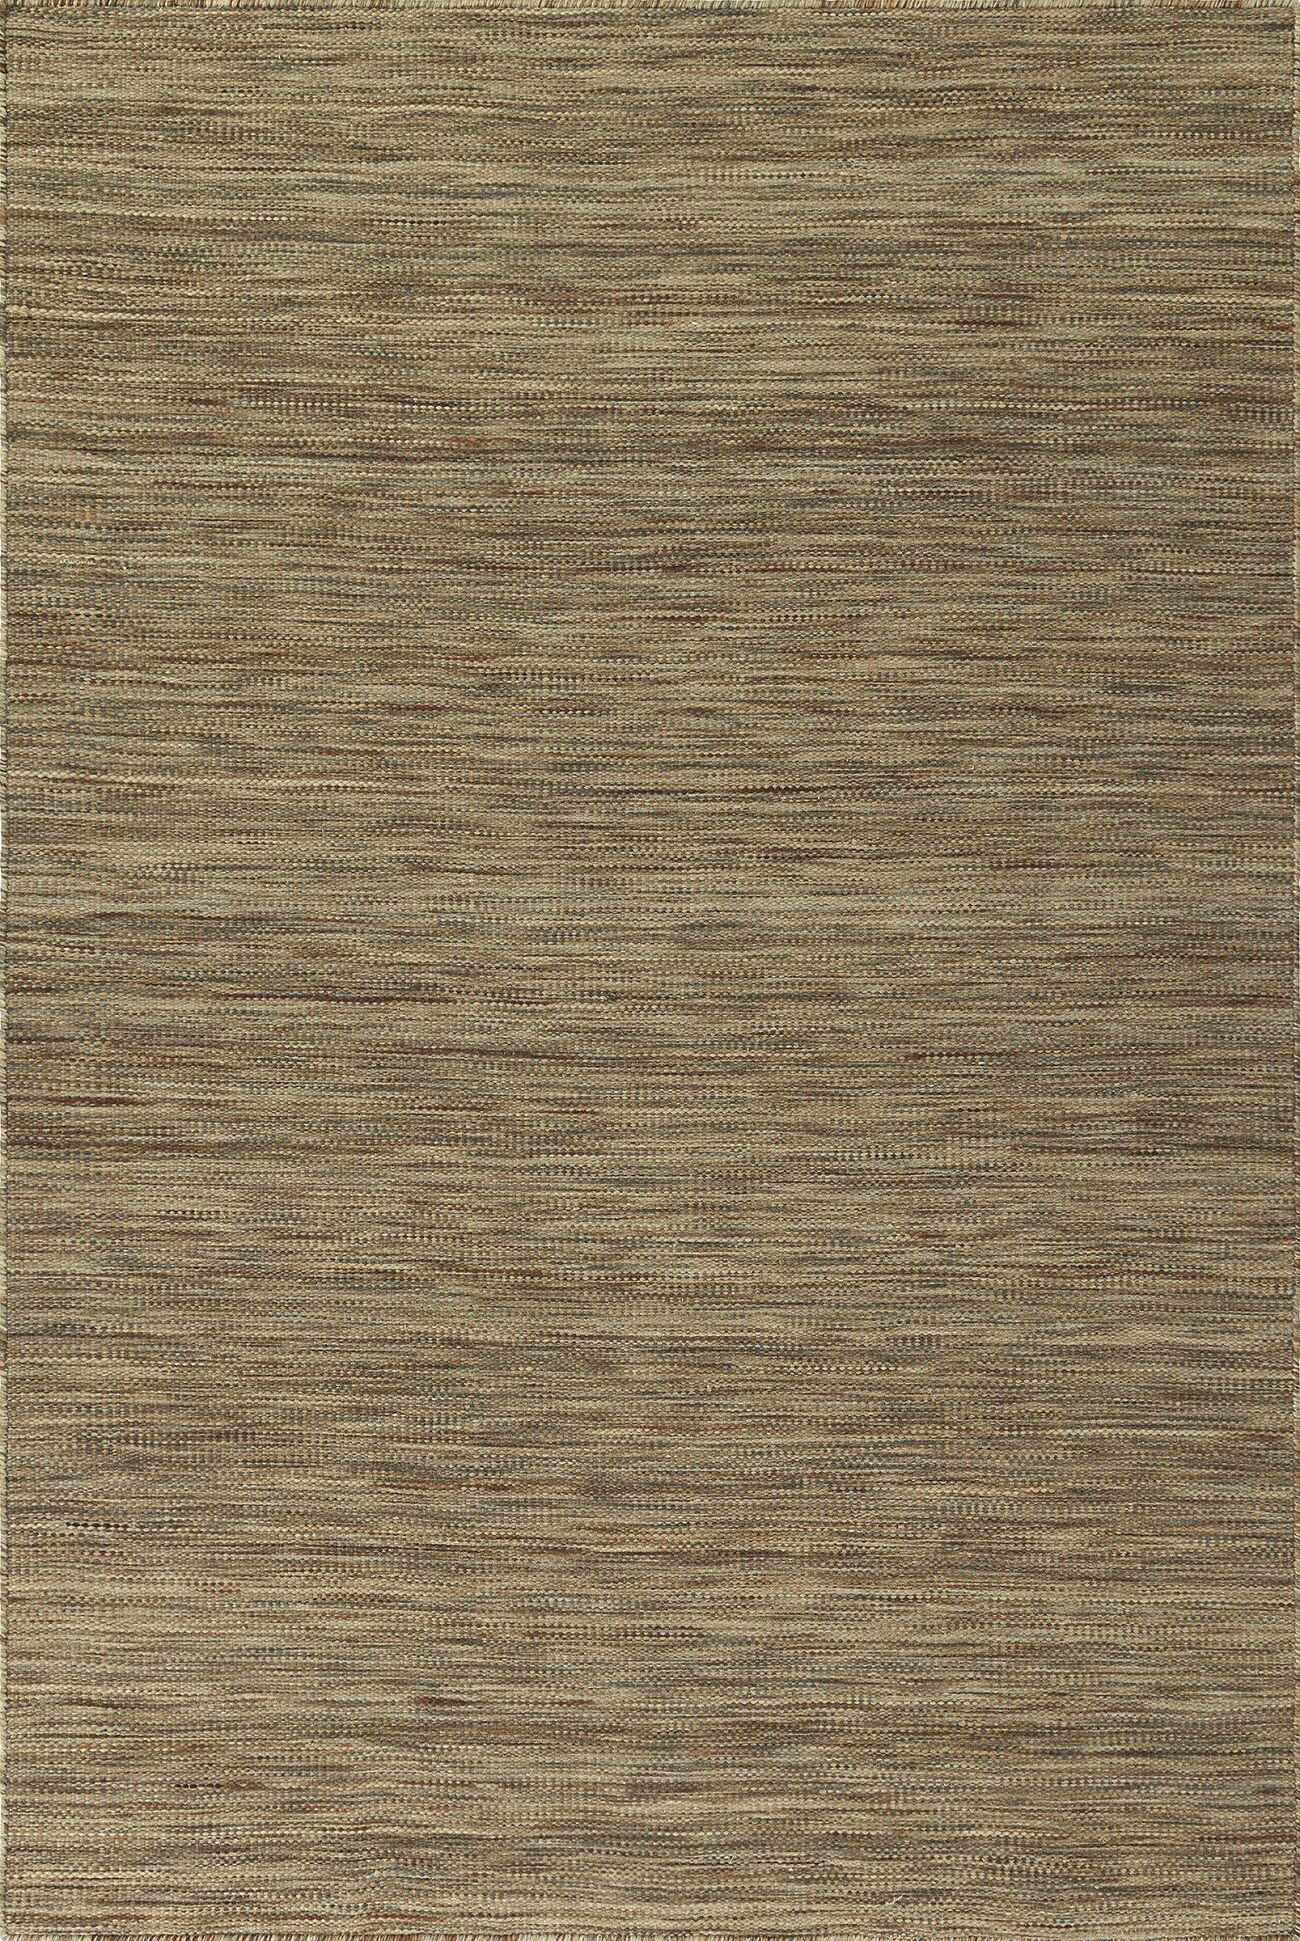 Huard Hand Woven Wool Desert Area Rug Rug Size: Rectangle 8' x 10'